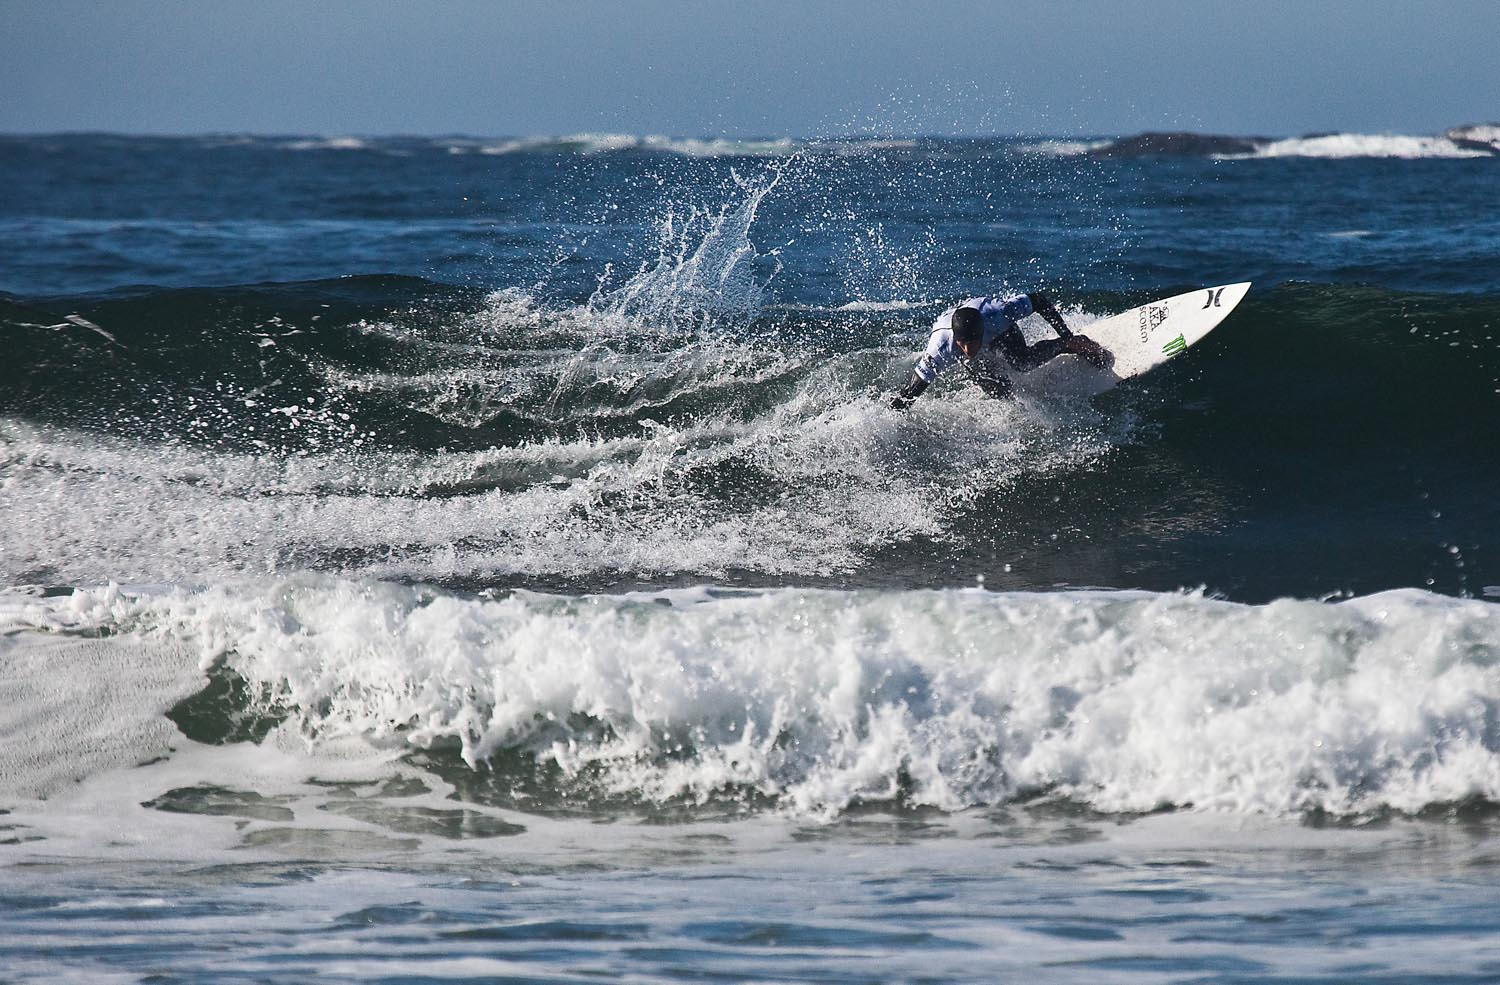 Pete Devries competing in the O'Neill CWC: Tofino 2010